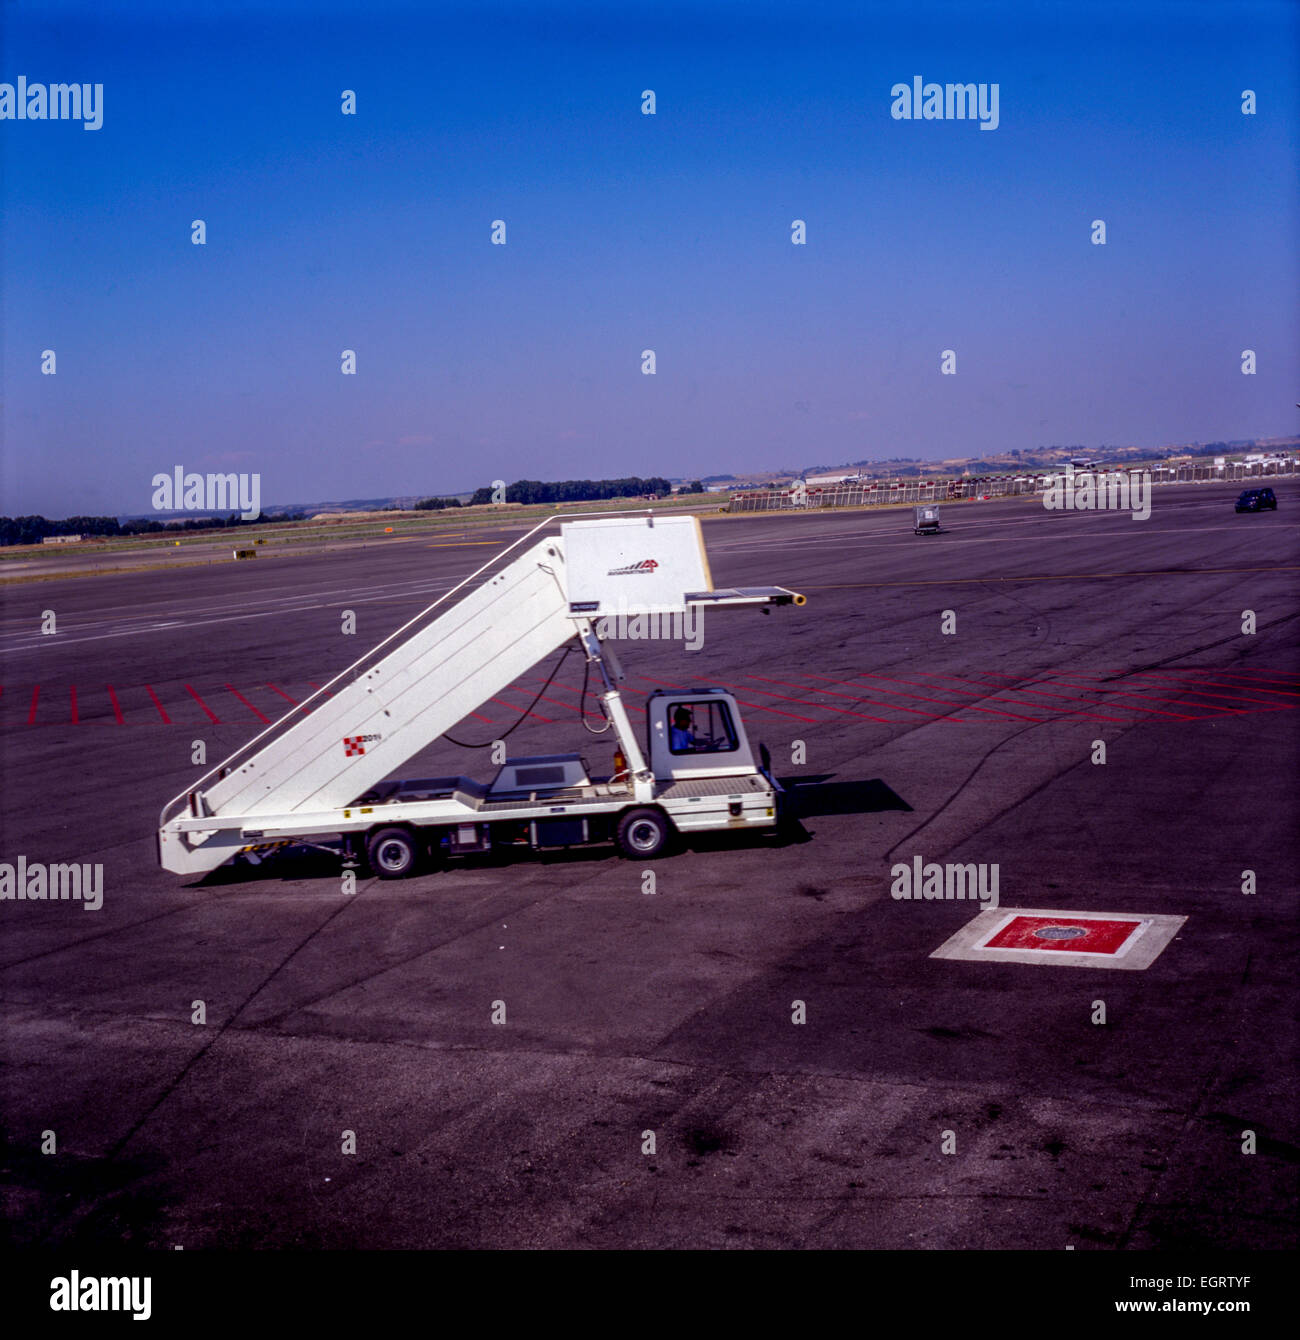 airport vehicle mobile stairways - Stock Image